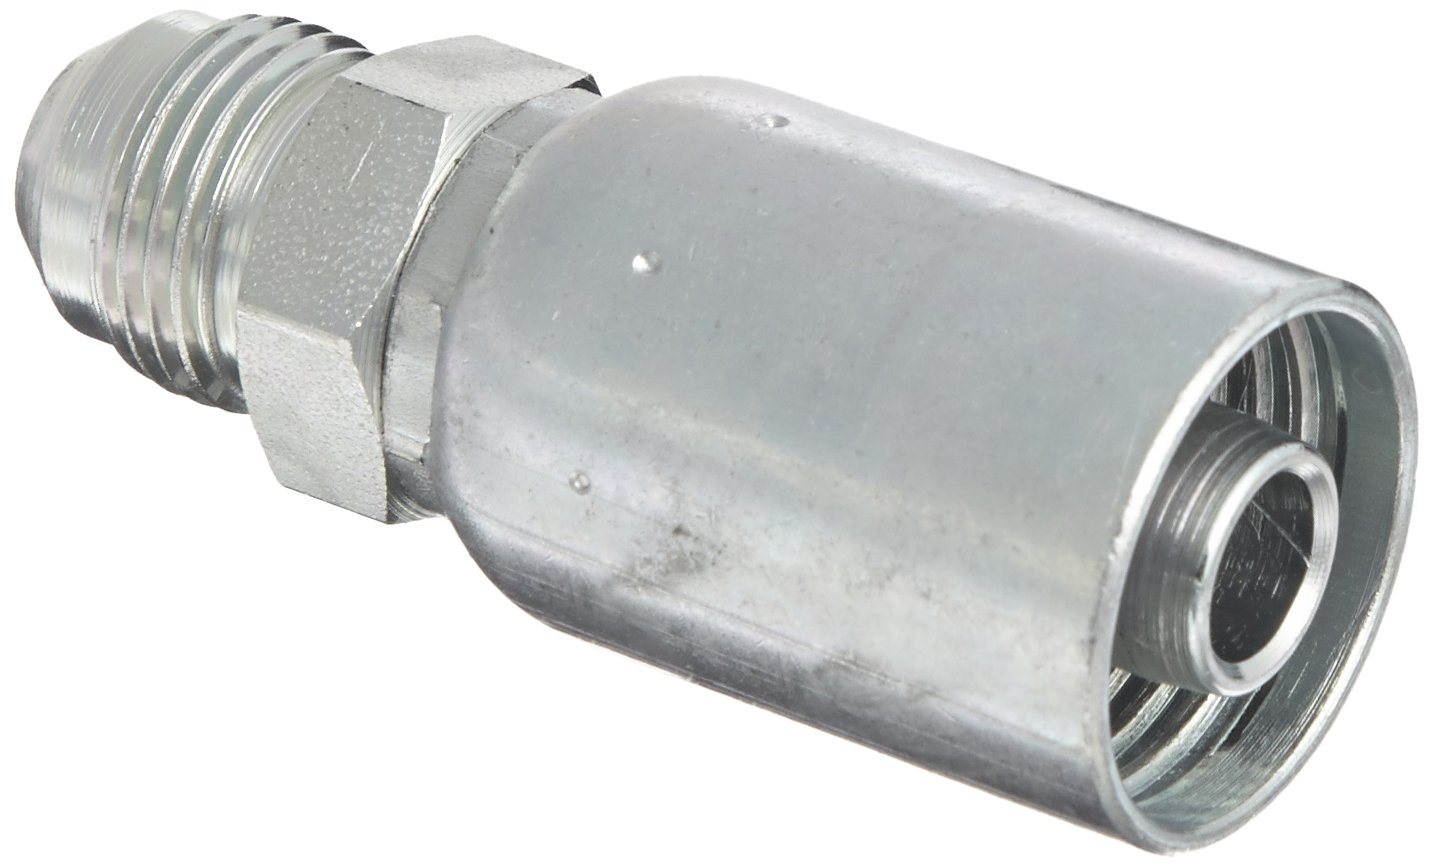 EATON Weatherhead Coll-O-Crimp 08U-510 Male Rigid Fitting Low Carbon Steel 5//8 Tube Size 1//2 Hose ID SAE 37 Degree